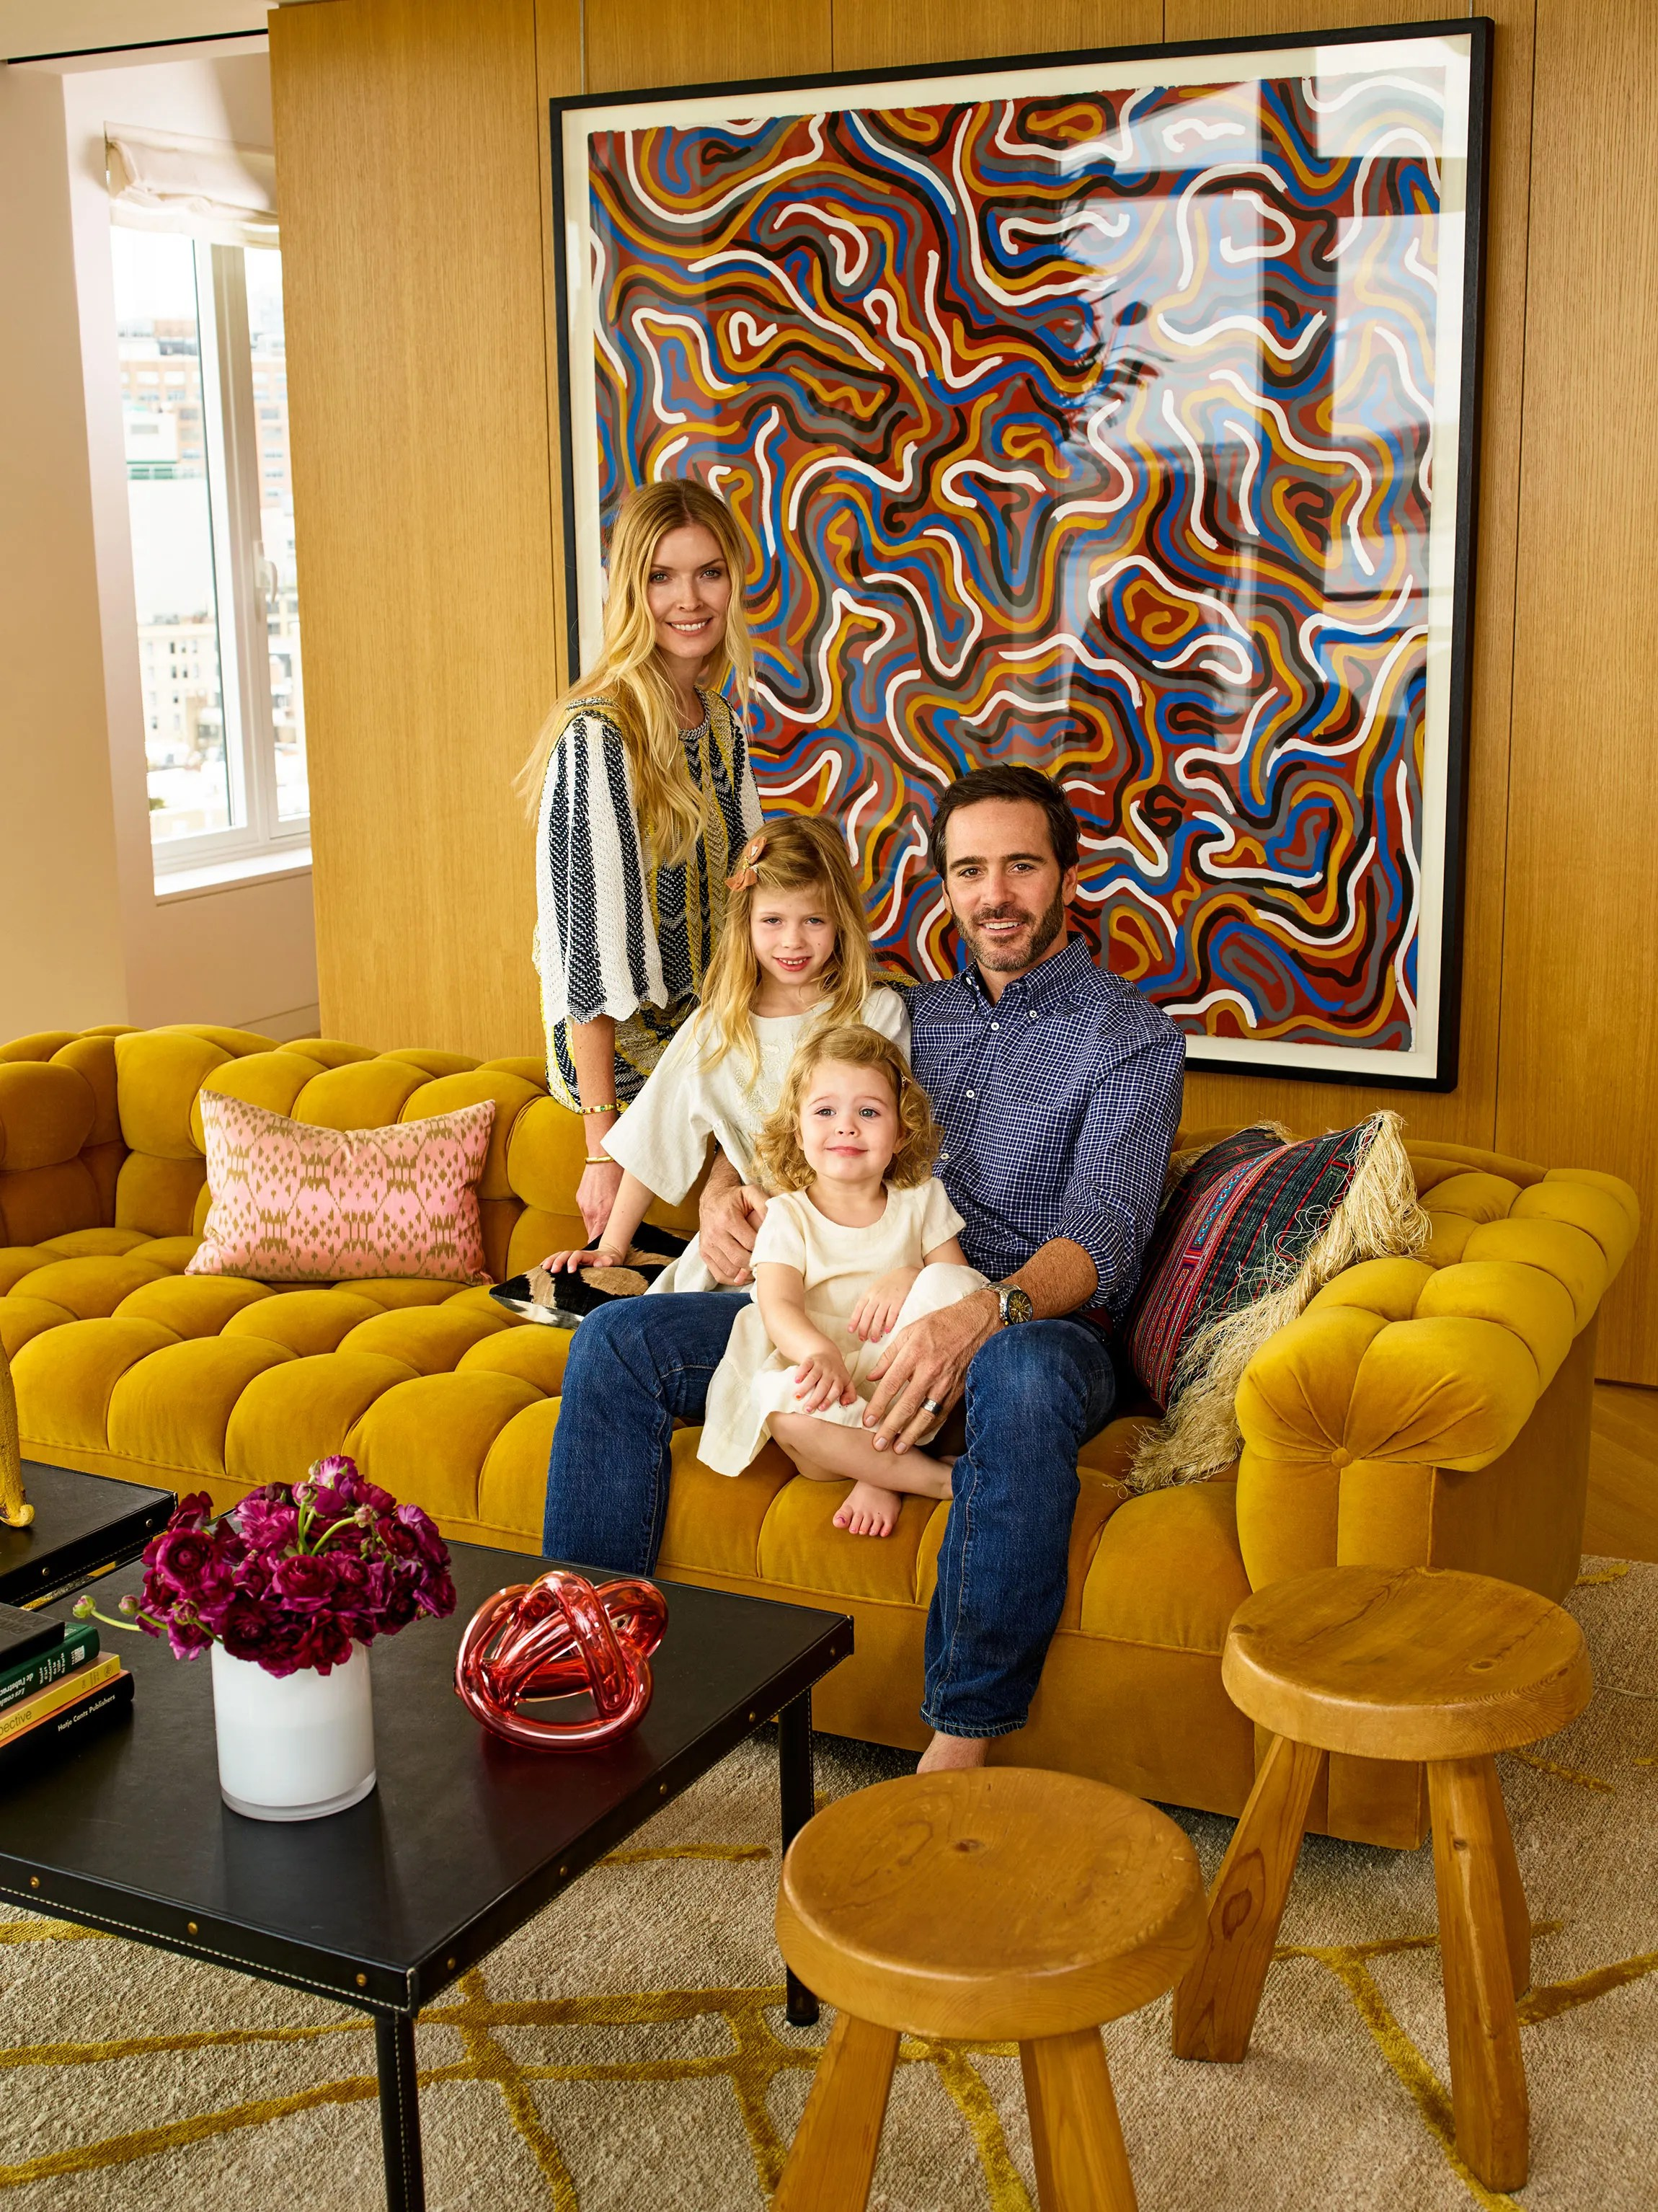 Jimmie Johnson S North Carolina Home Got An Unexpected